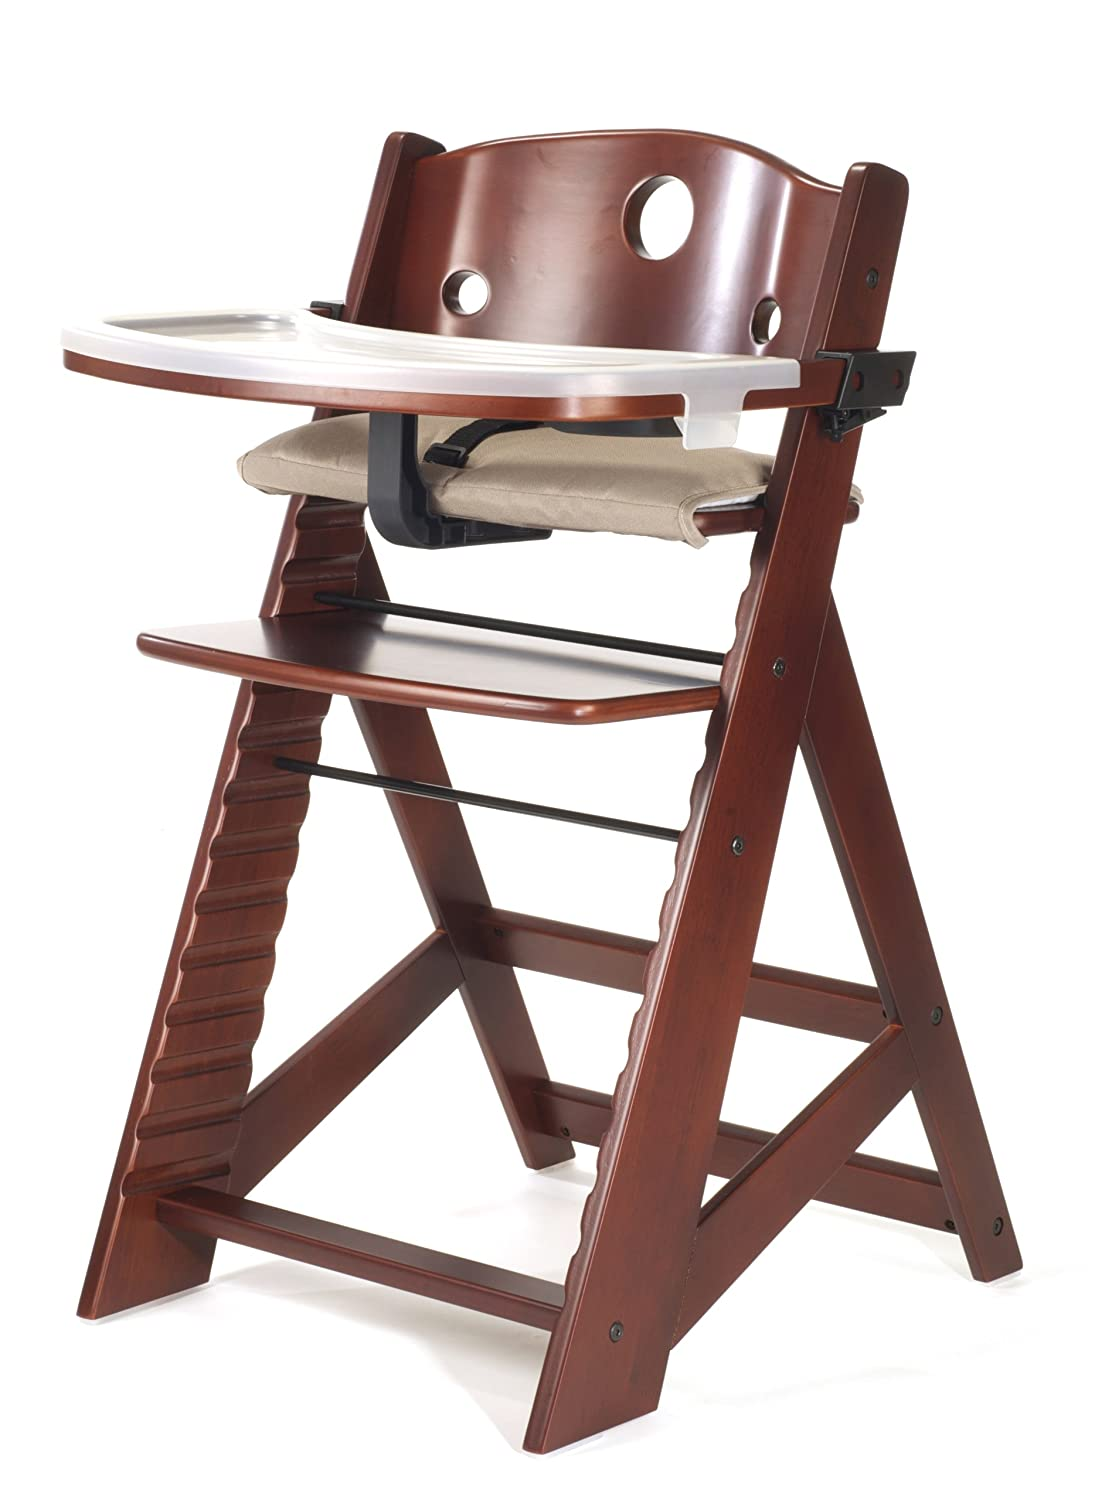 Amazon.com : Keekaroo Height Right High Chair With Tray, Mahogany :  Childrens Highchairs : Baby